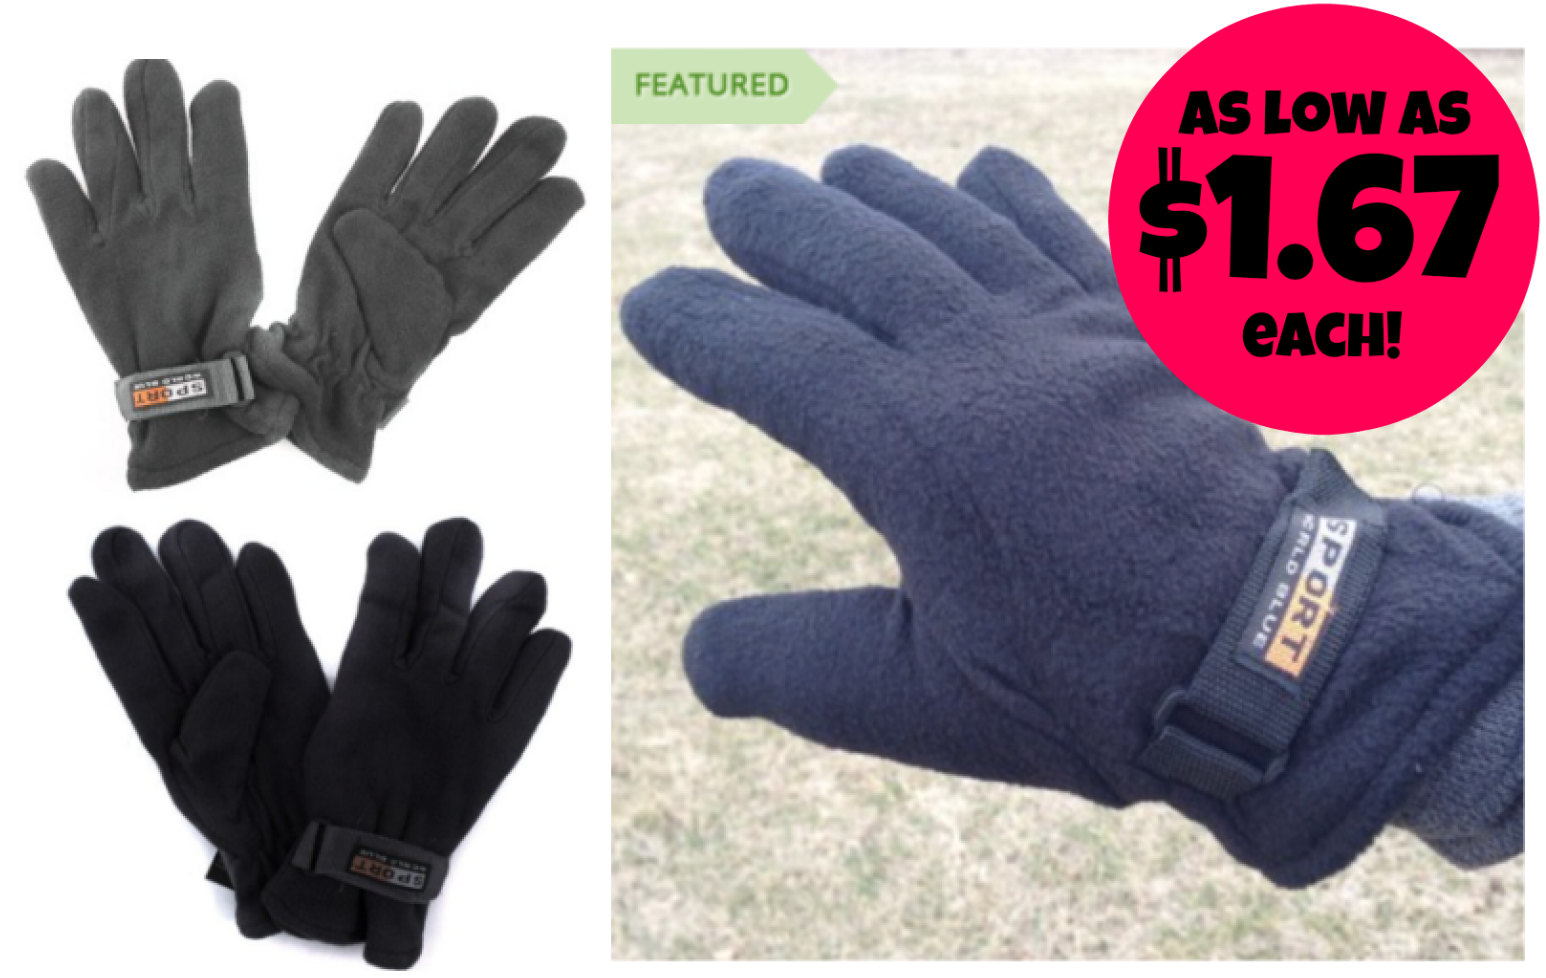 http://www.thebinderladies.com/2014/10/13deals-polar-fleece-gloves-as-low-as.html#.VEke6kvdtbw